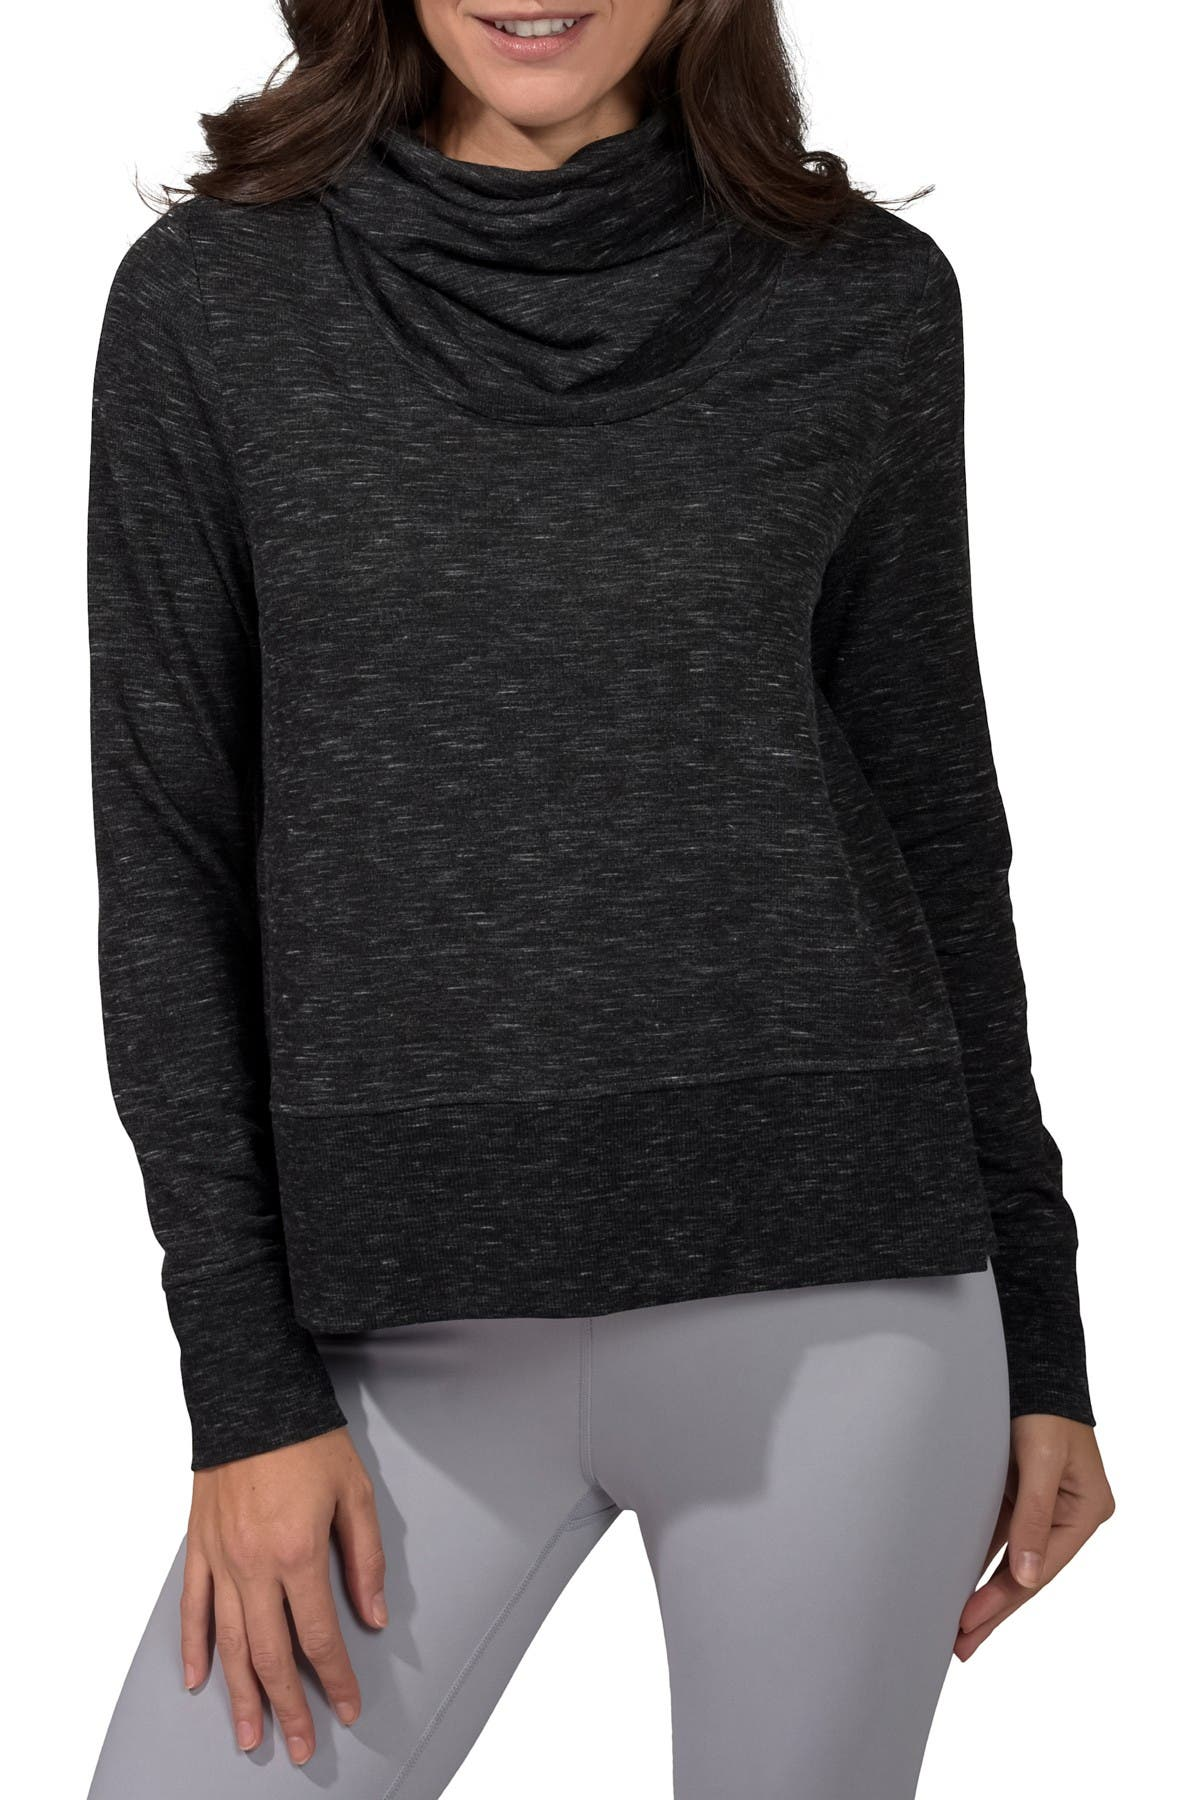 Image of 90 Degree By Reflex Terry Brushed Long Sleeve Cropped Cow Neck Top